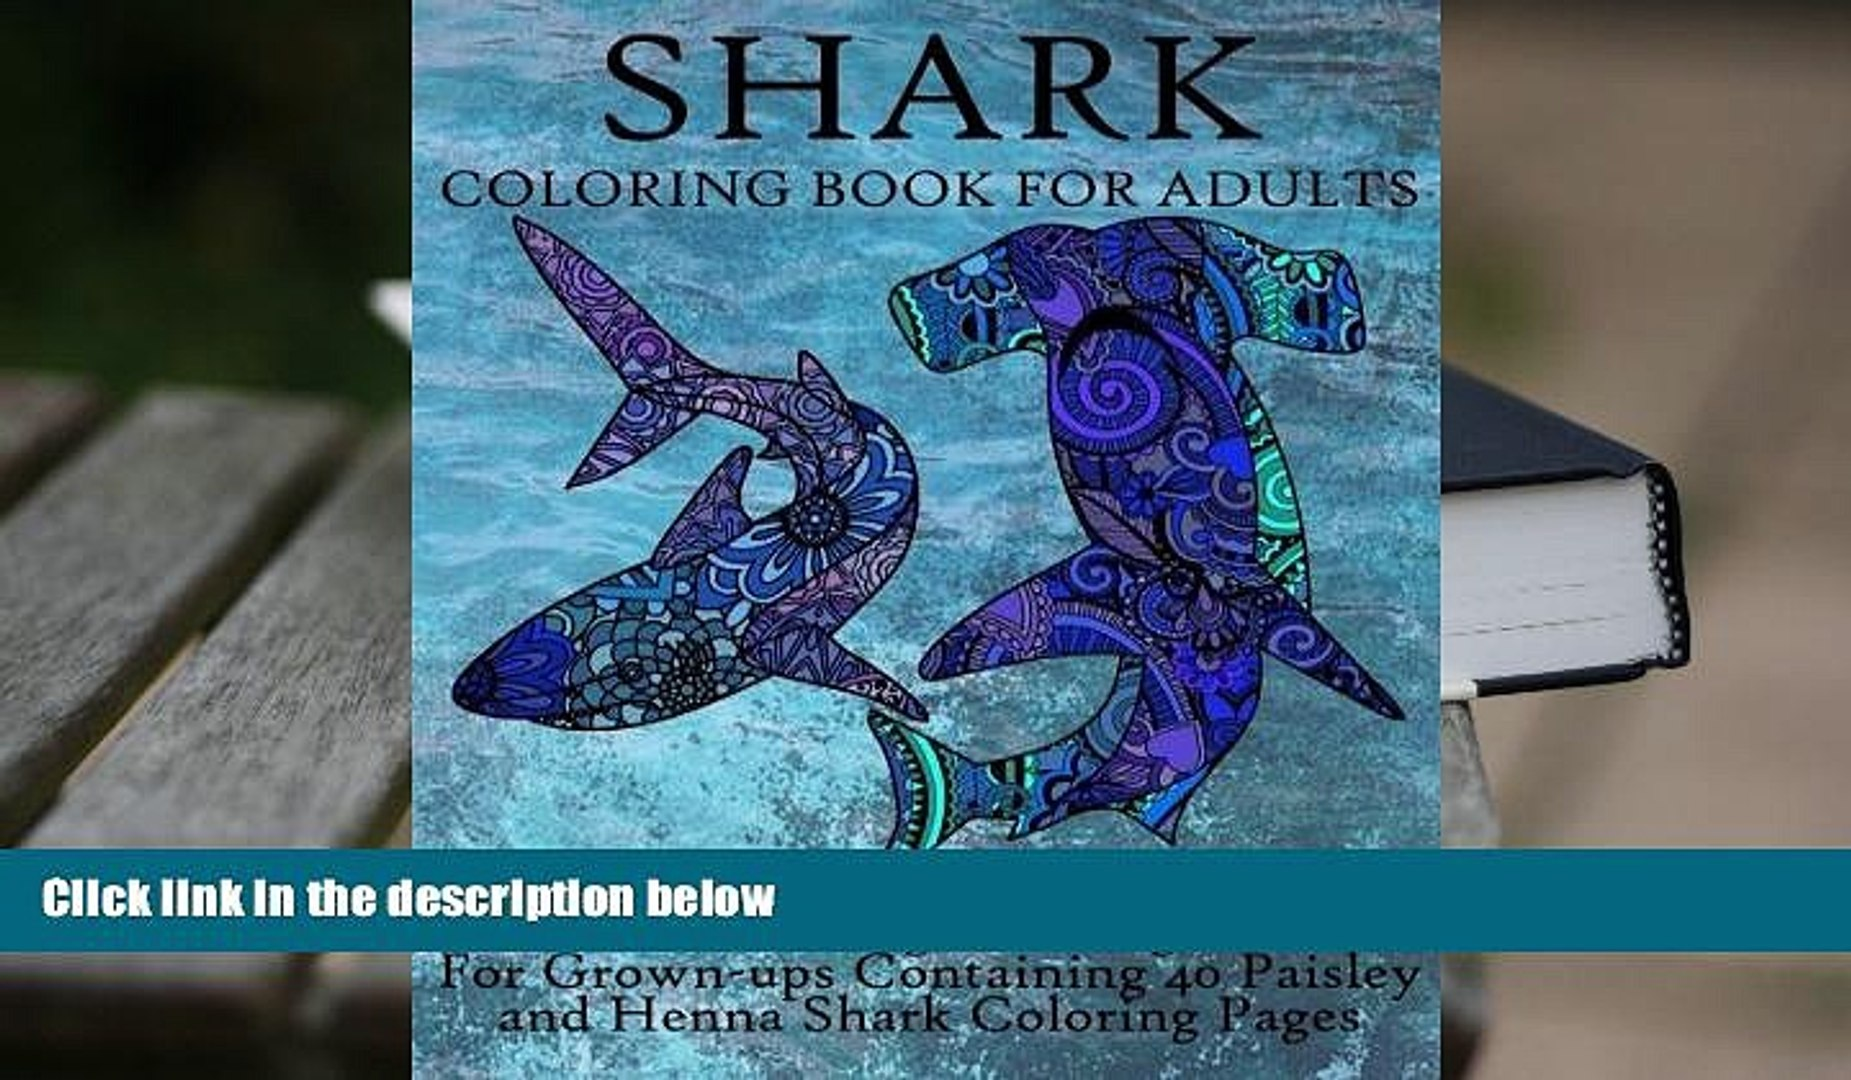 Best Pdf Shark Coloring Book For Adults Stress Relieving Coloring Book For Grown Ups Containing Video Dailymotion